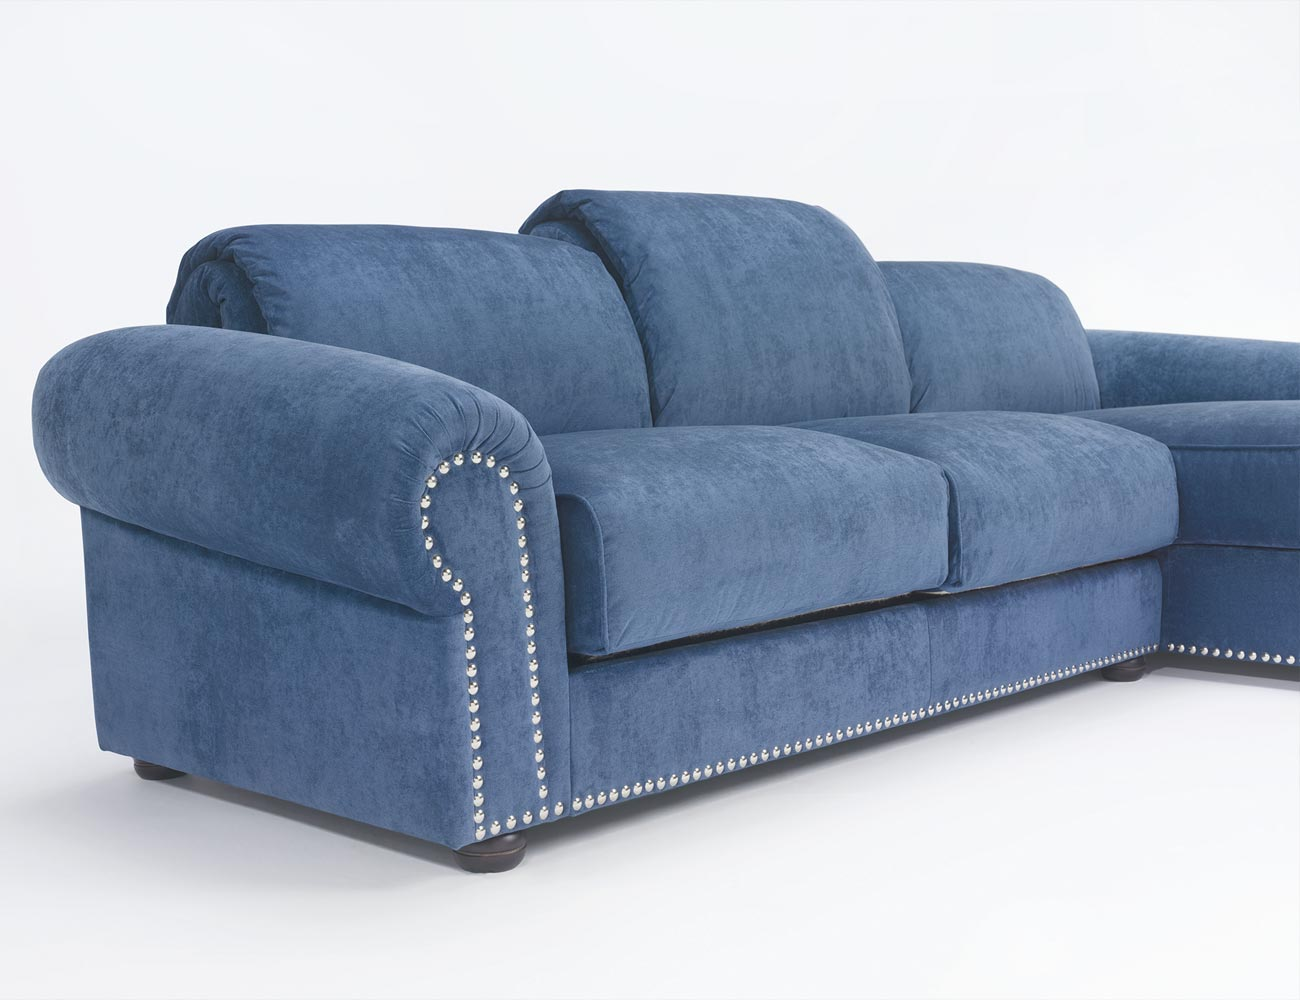 Sofa chaiselongue gran lujo decorativo azul 134